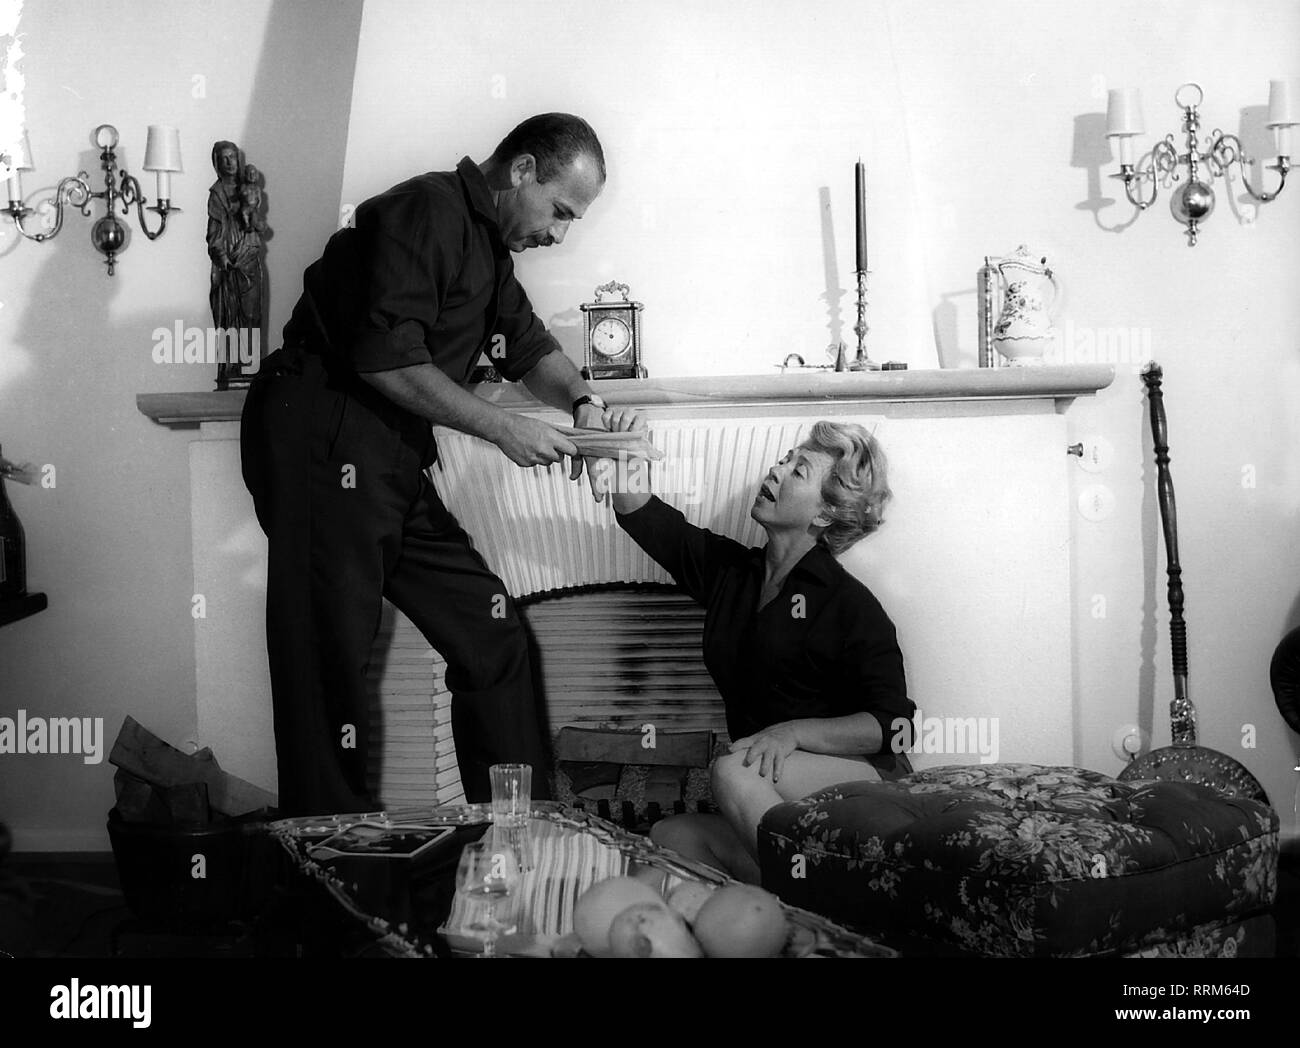 Meysel, Inge, 30.5.1910 - 10.7.2004, German actress, half length, with her husband John Olden, rehearsing, 1960s, Additional-Rights-Clearance-Info-Not-Available - Stock Image